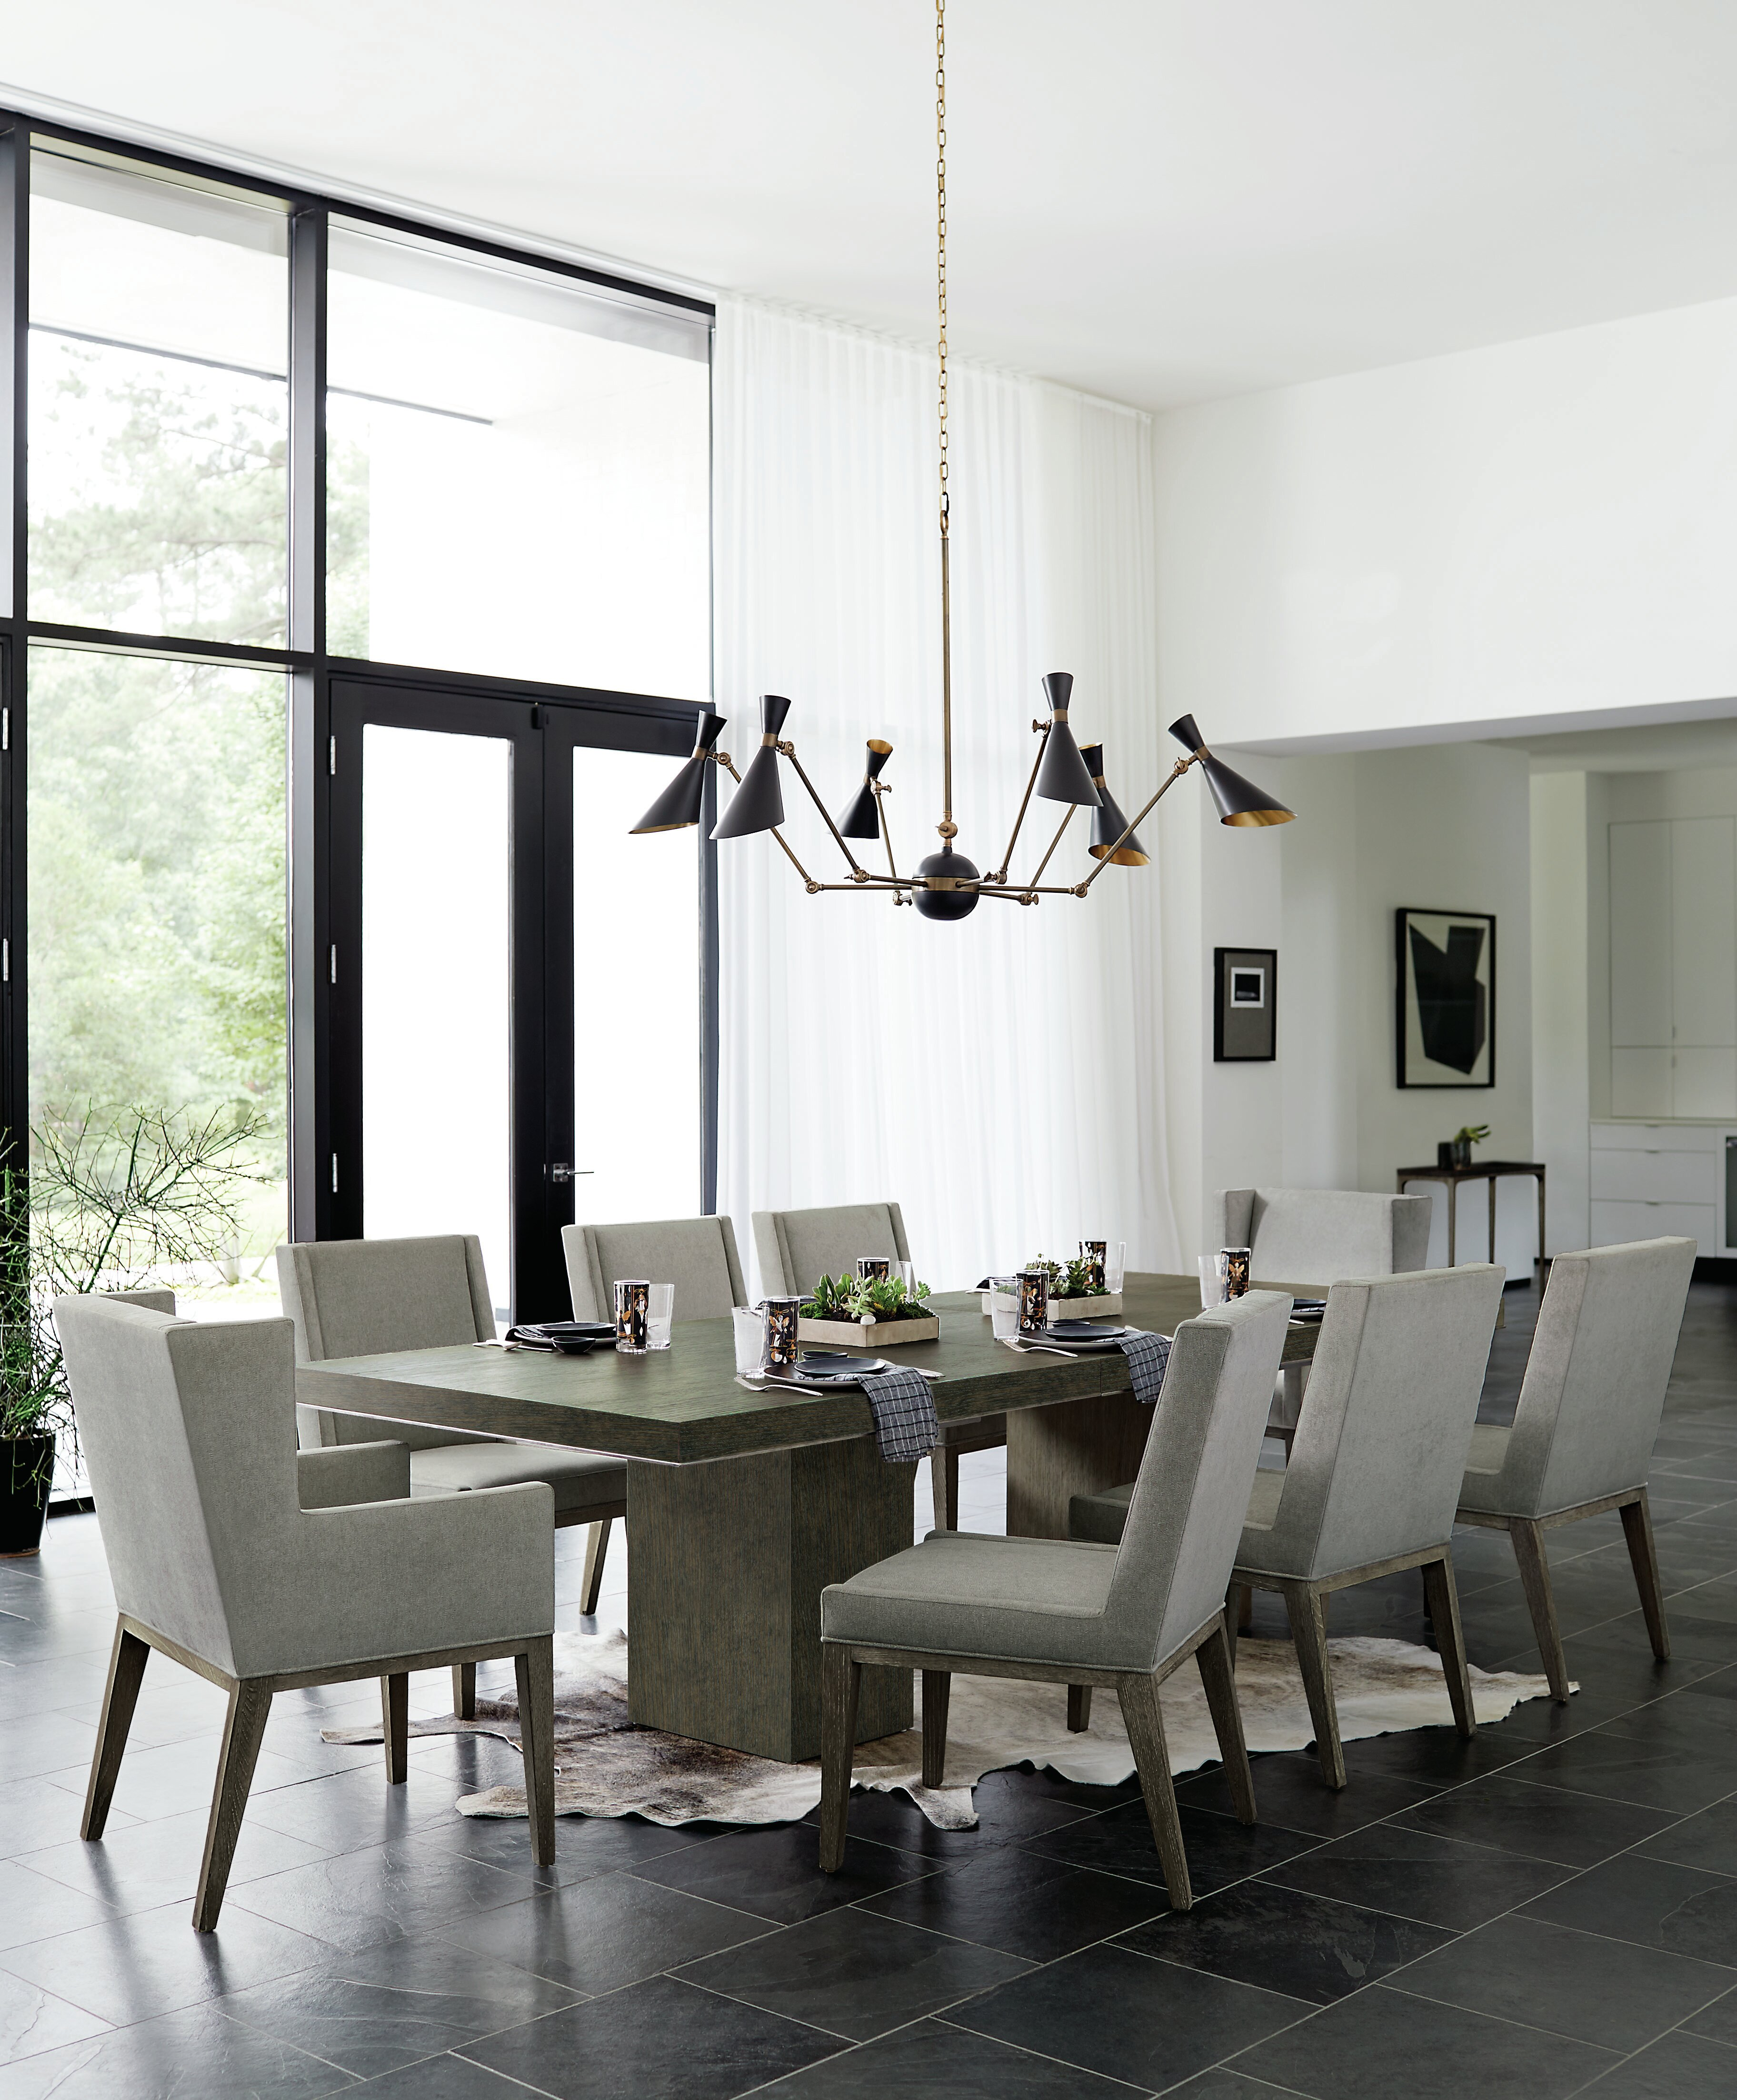 Bernhardt Kitchen Dining Room Sets Tables Free Shipping Over 35 Wayfair